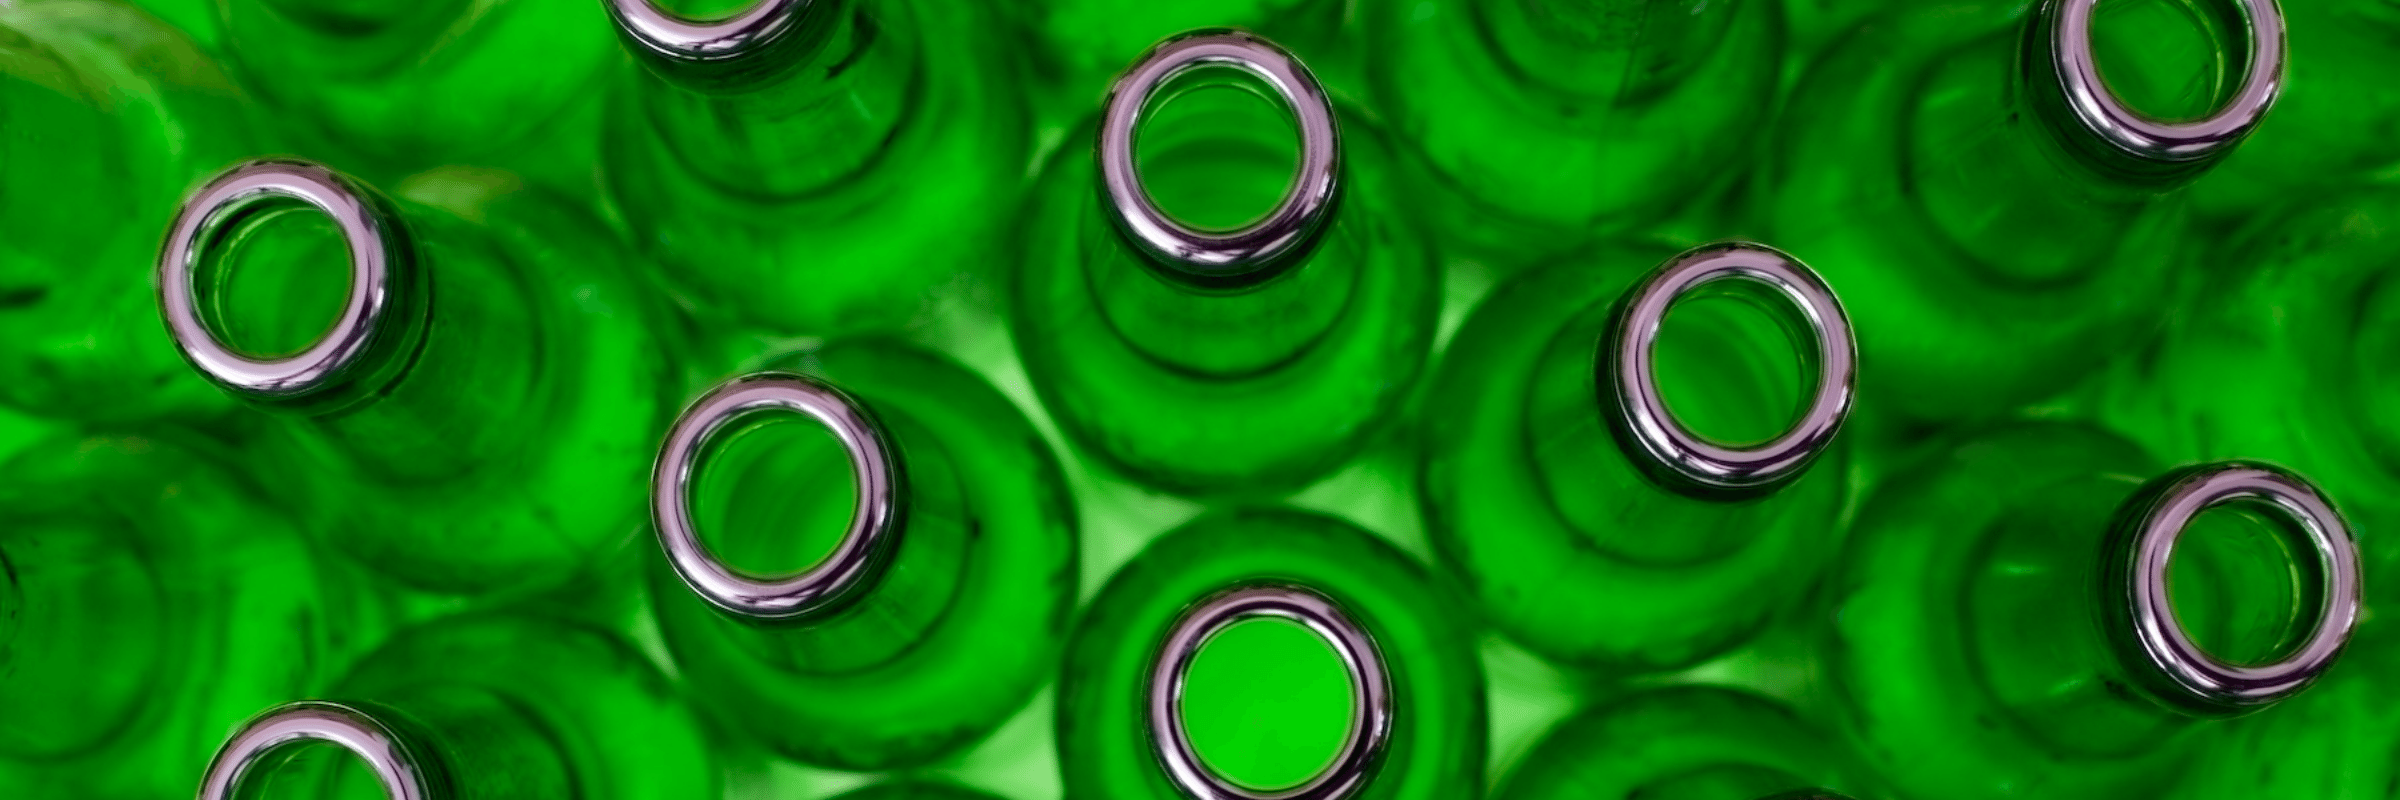 Glass Recycling Header 2